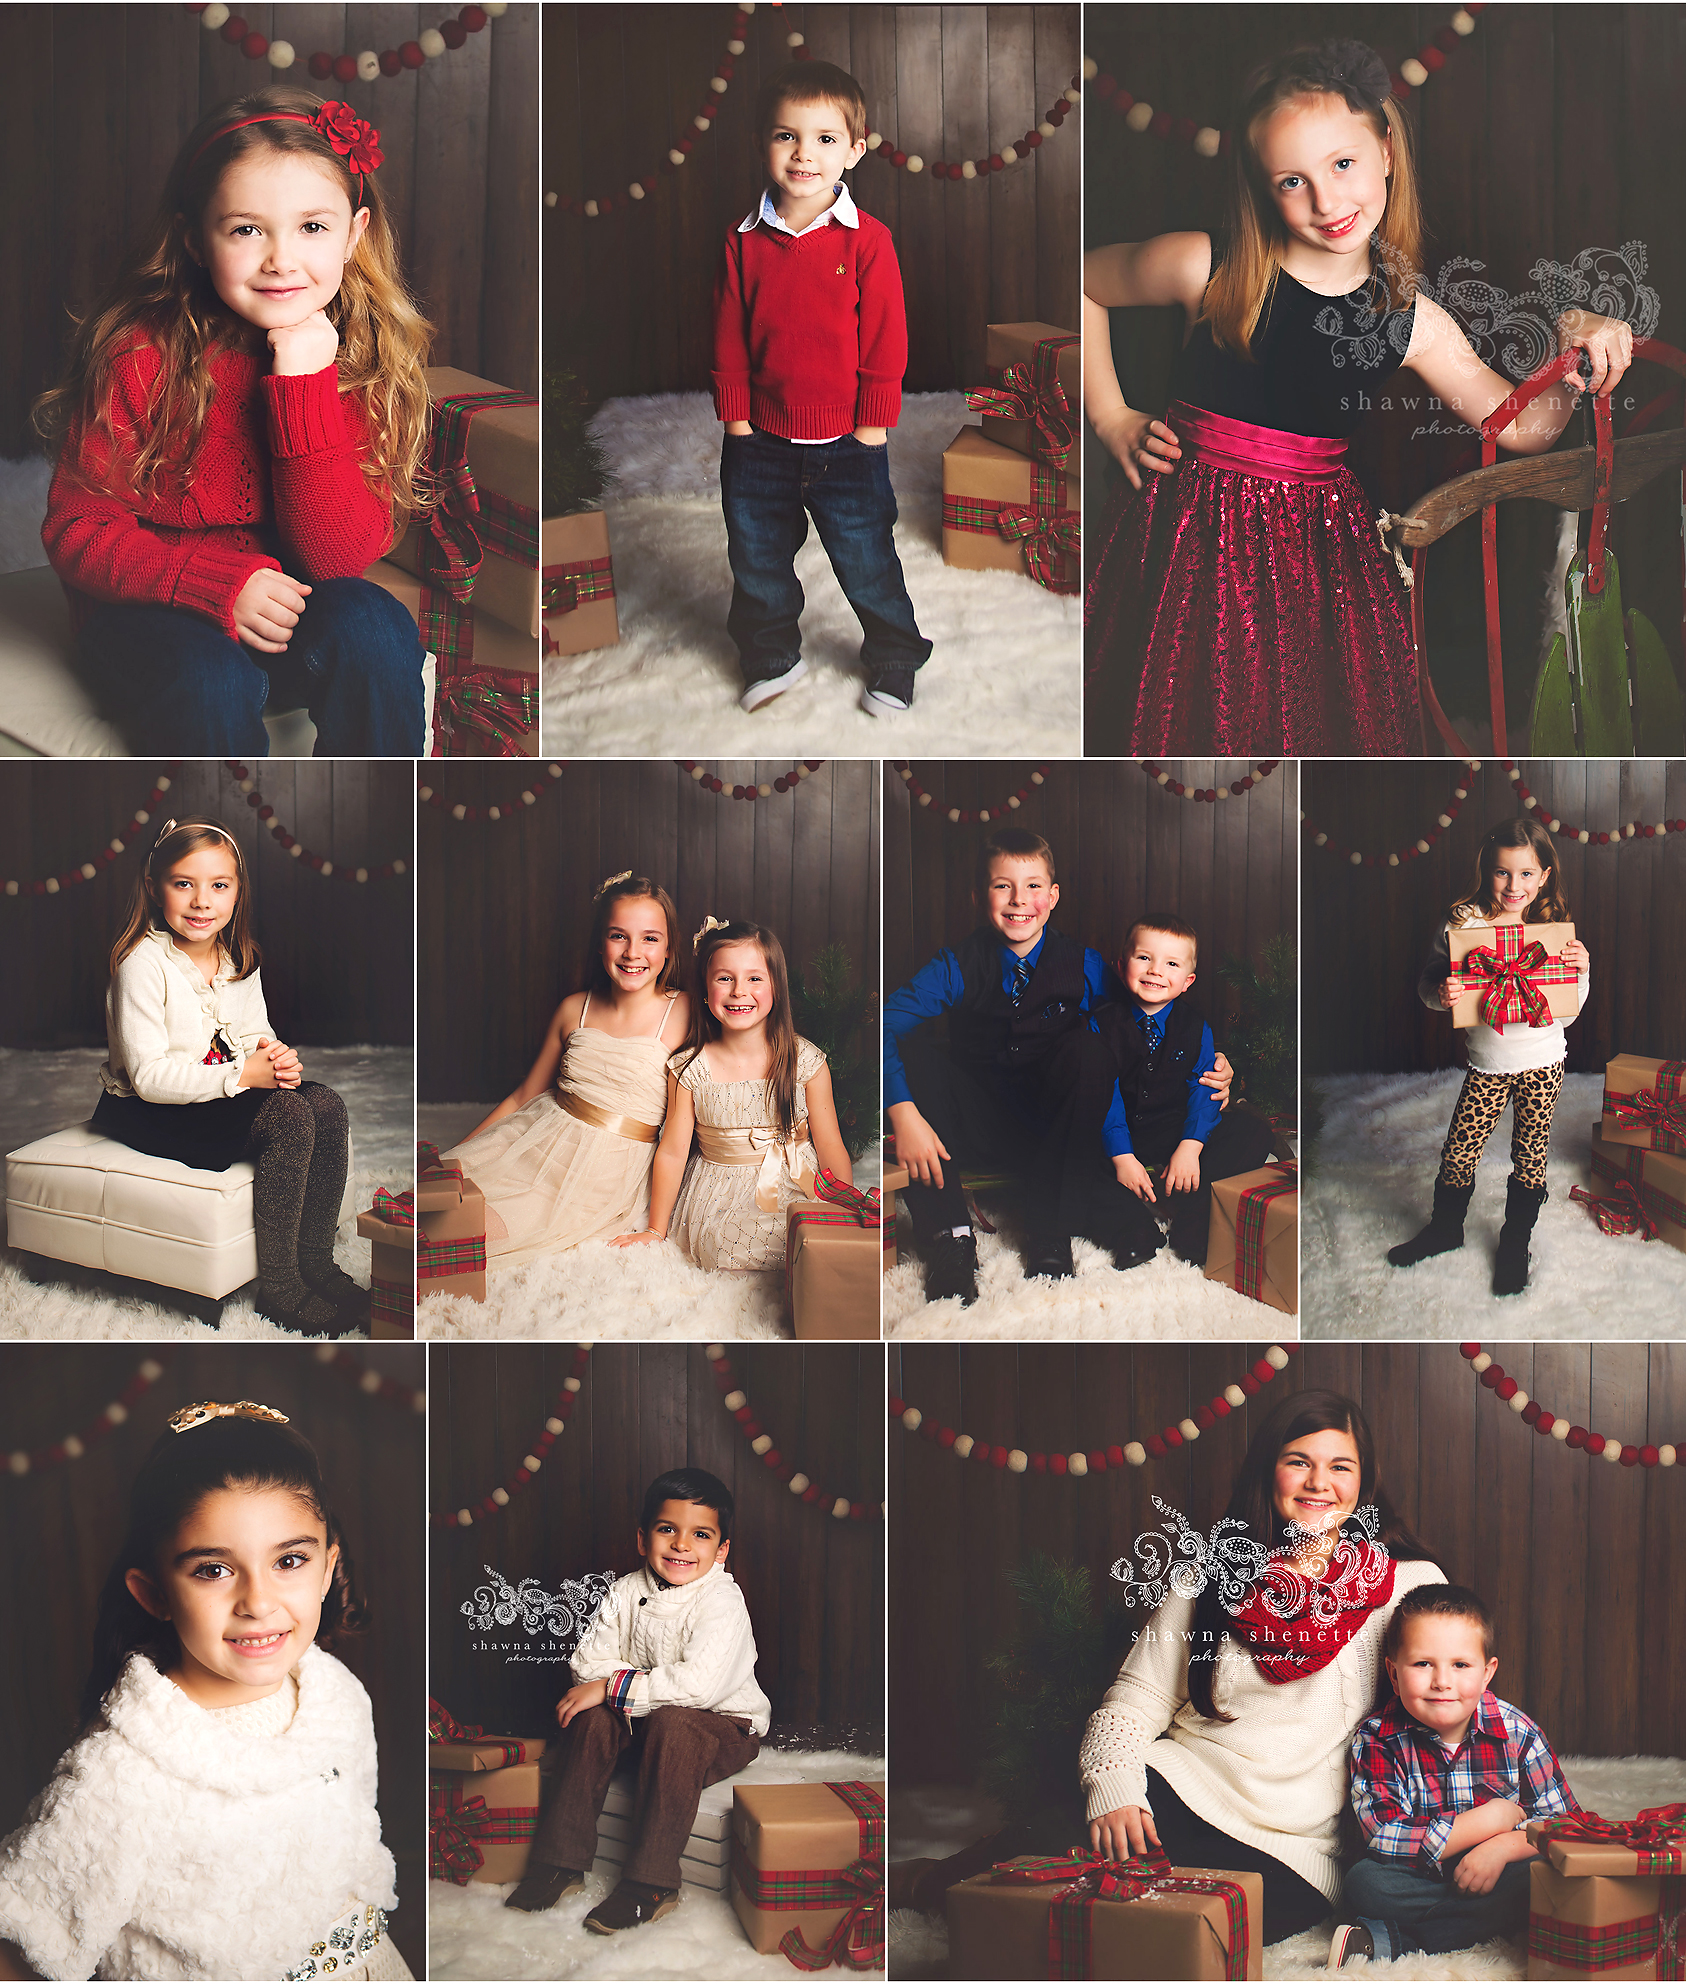 2014 Massachusetts Holiday Mini Photo Sessions Millbury Child Family Photographer